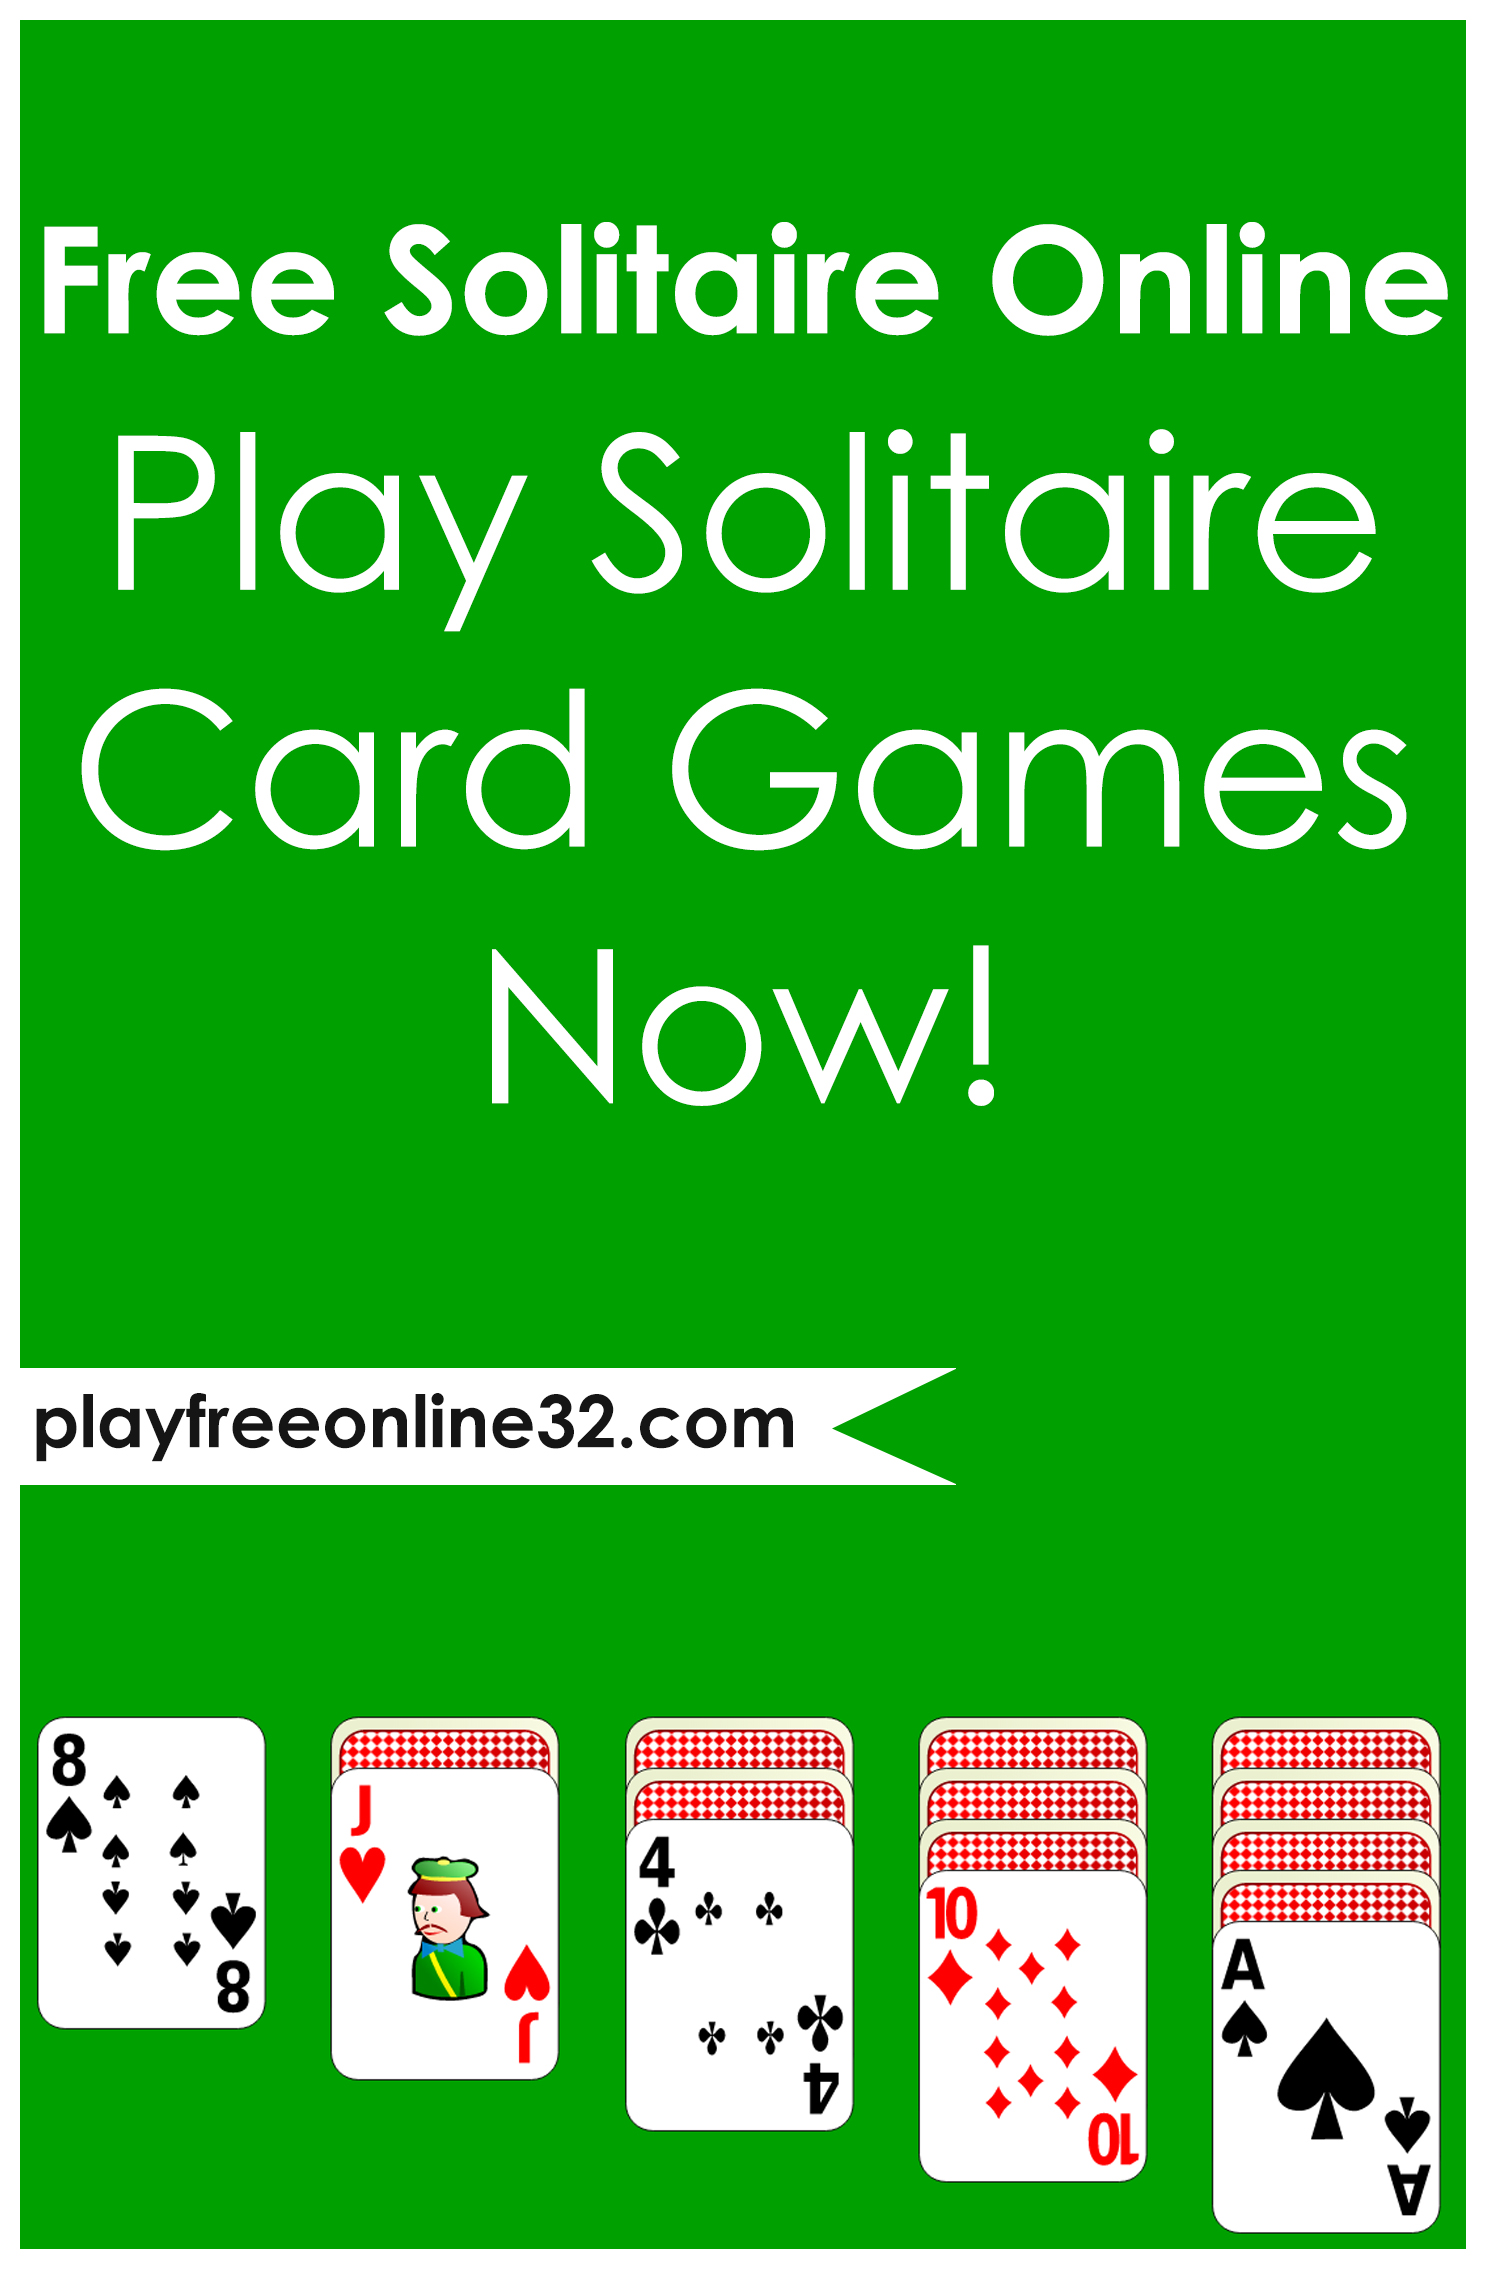 Online Card Games Solitaire Classic Play Free Solitaire Card Games Online